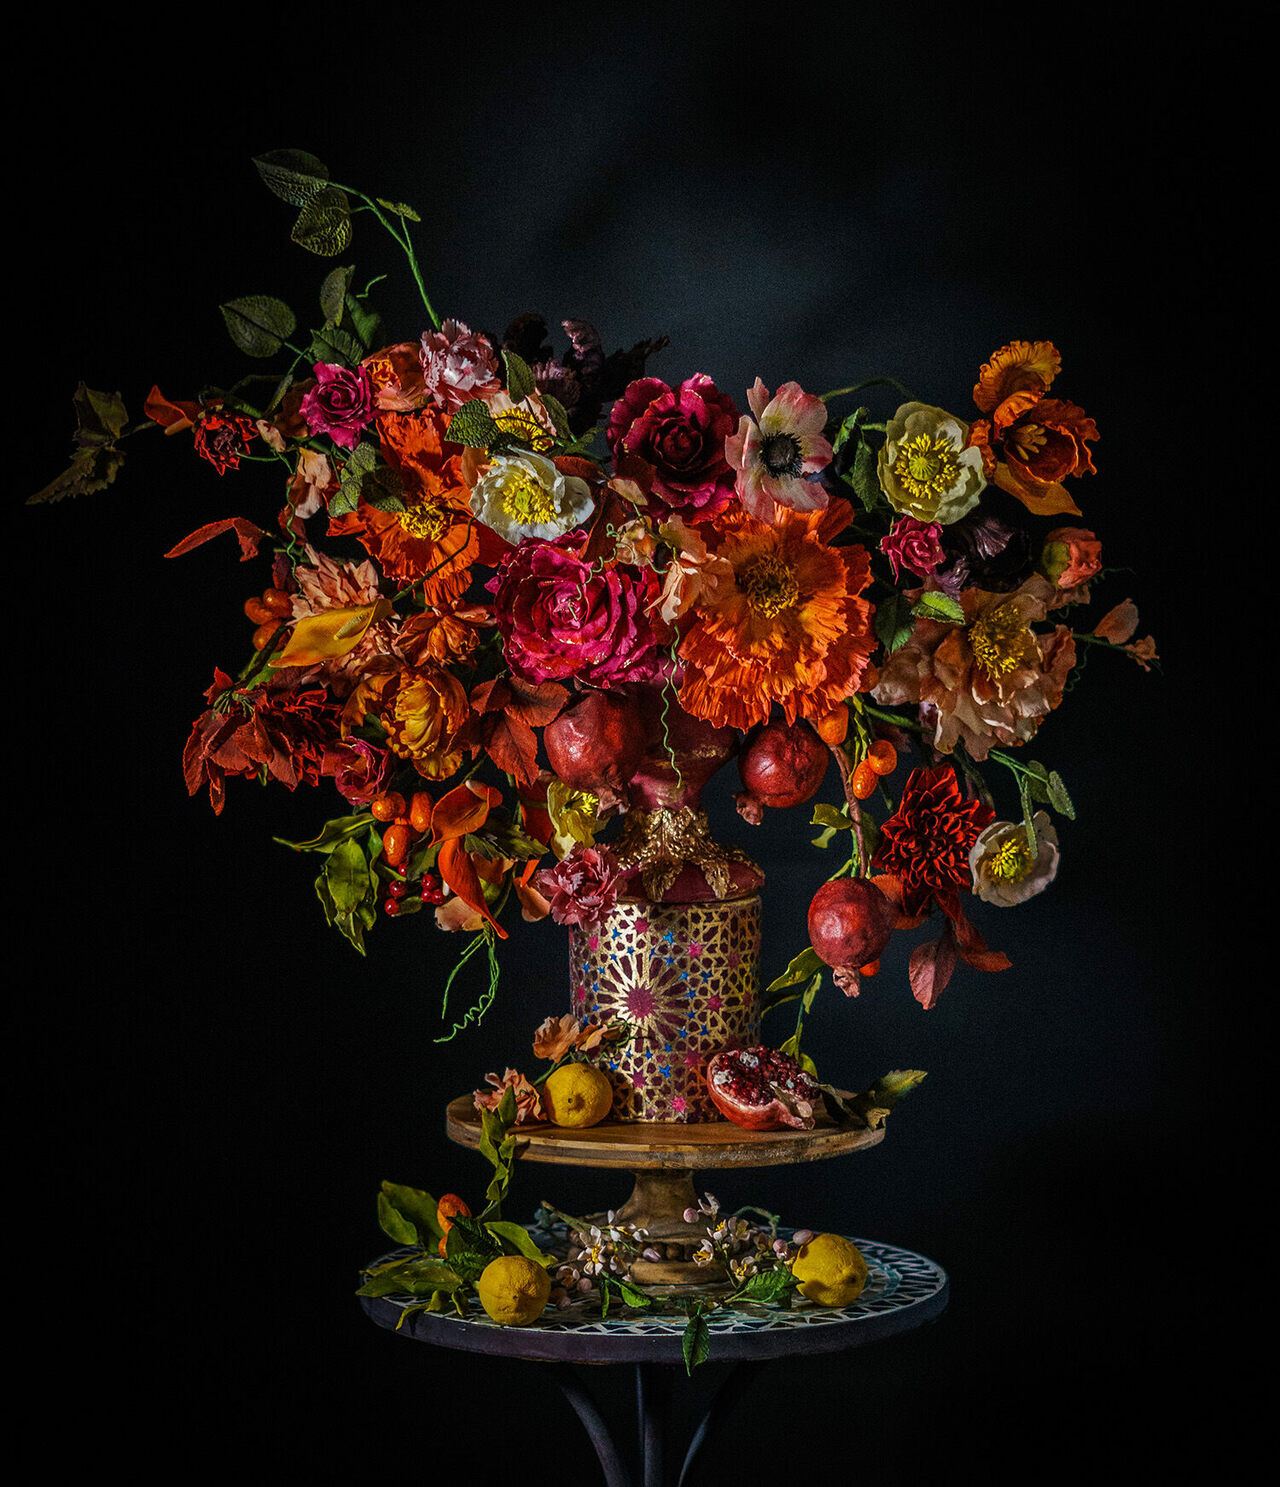 Simon's cakes evoke the baroque still-lifes of Dutch Masters such as Ambrosius Bosschaert.